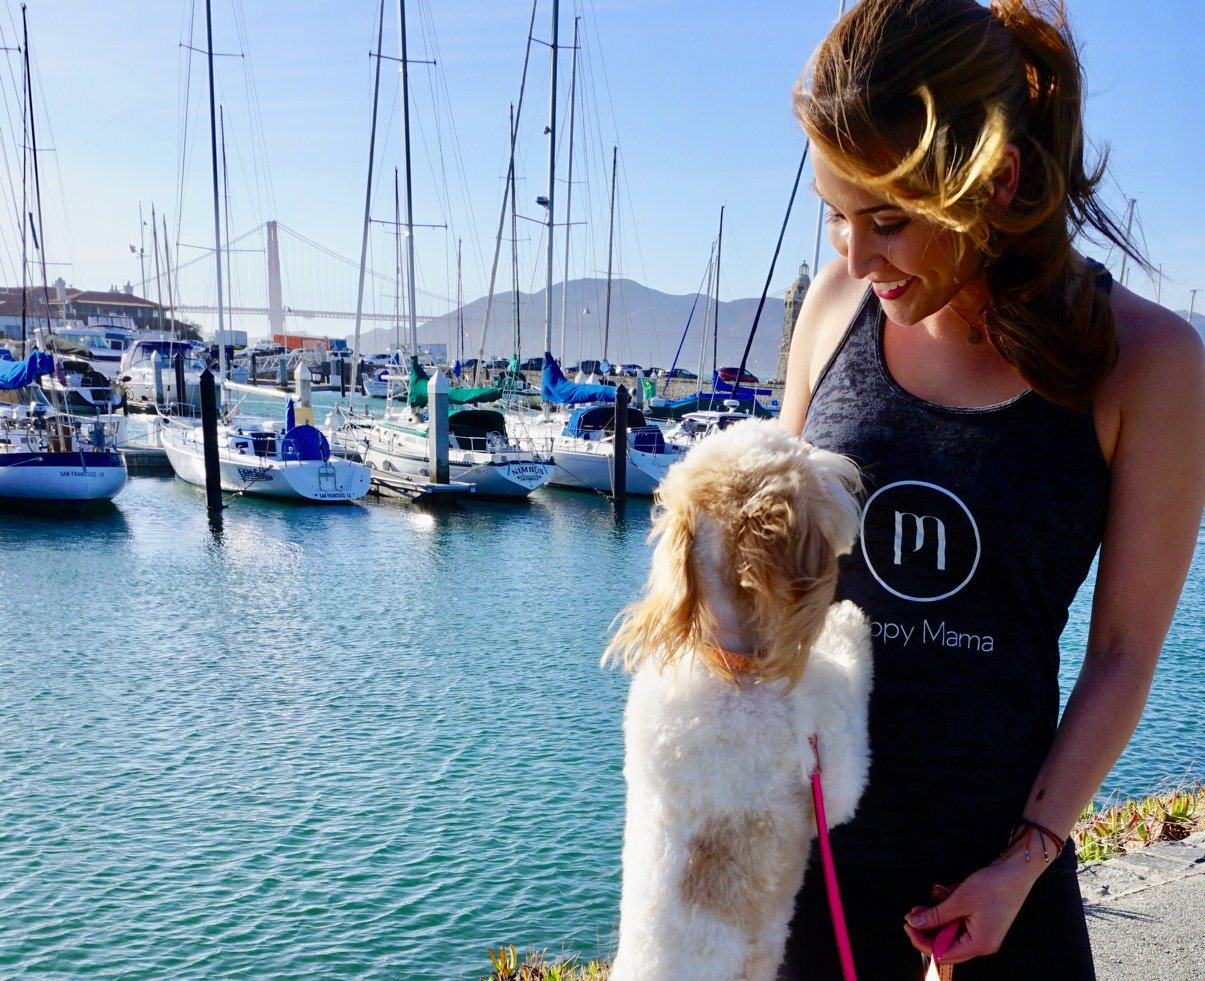 Black Puppy Mama Tank Top - Style for Goldendoodle Moms!